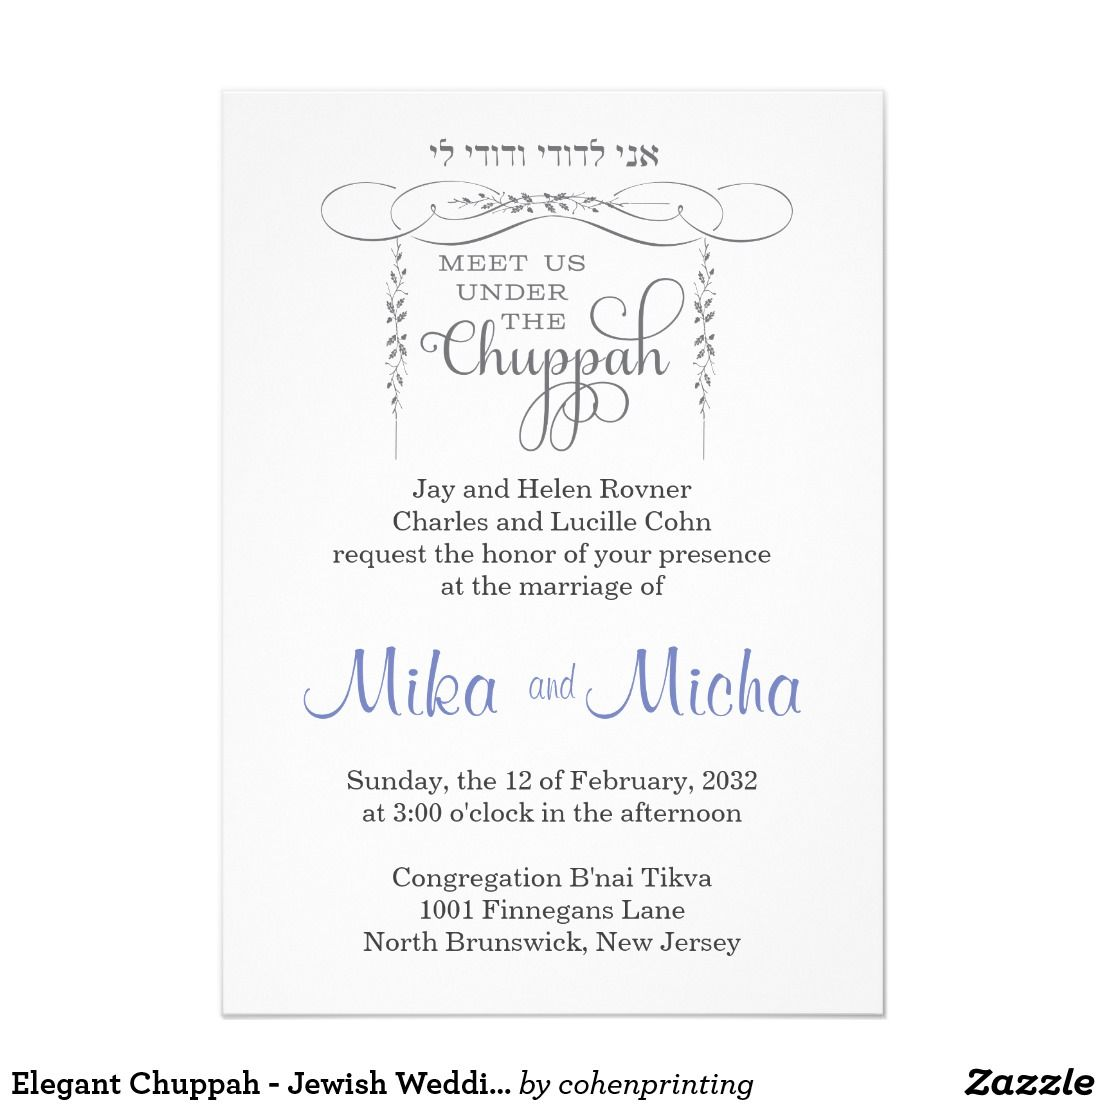 Elegant Chuppah Jewish Wedding Invitation Chuppah Jewish